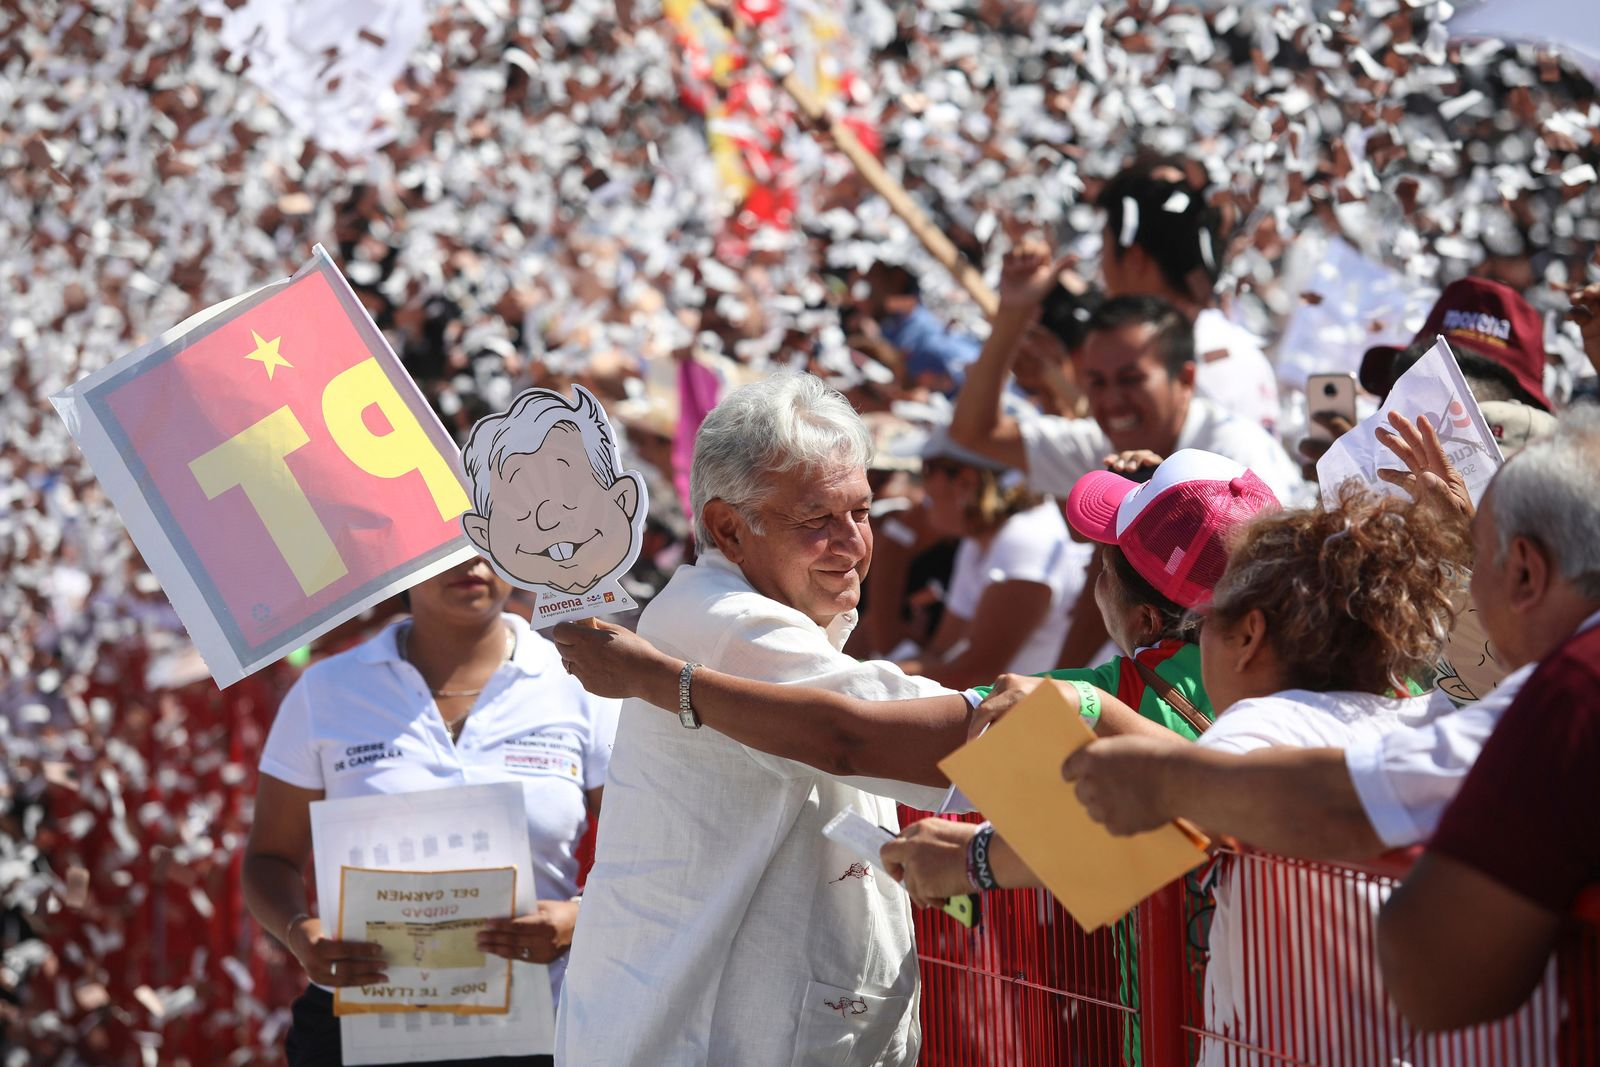 Mexico's presidential candidate Andres Manuel Lopez Obrador of the MORENA party arrives to a campaign rally in Veracruz, Mexico, Saturday, June 23, 2018. (AP Photo/Felix Marquez)